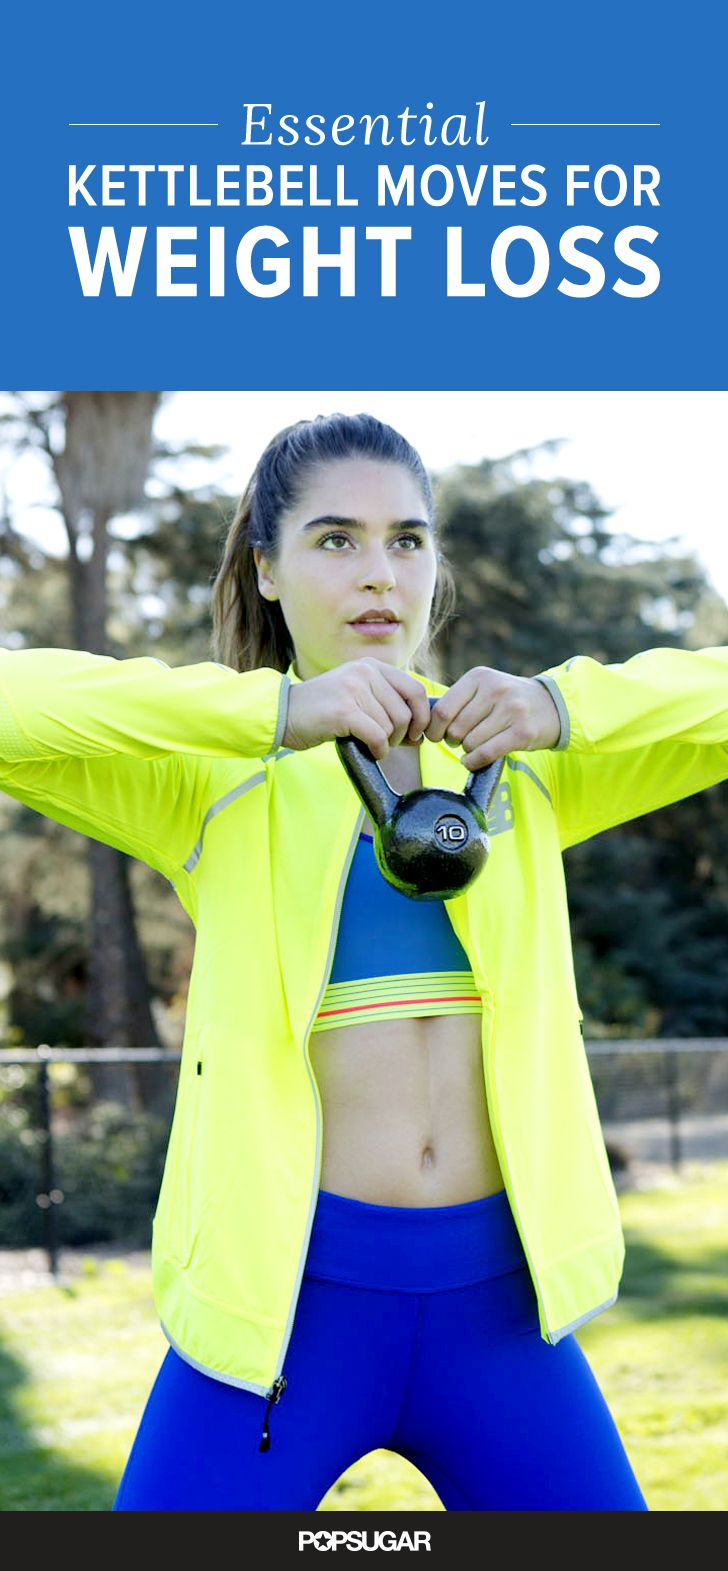 Kettlebell fans love the heavy, round-shaped weights for a reason — kettlebell exercises combine cardio and strength training for a time-saving calorie burn. The amount of calories you can burn using kettlebells can be amazingly high: a study by the American Council on Exercise found that the average person burns 400 calories in 20 minutes when doing kettlebell exercises.